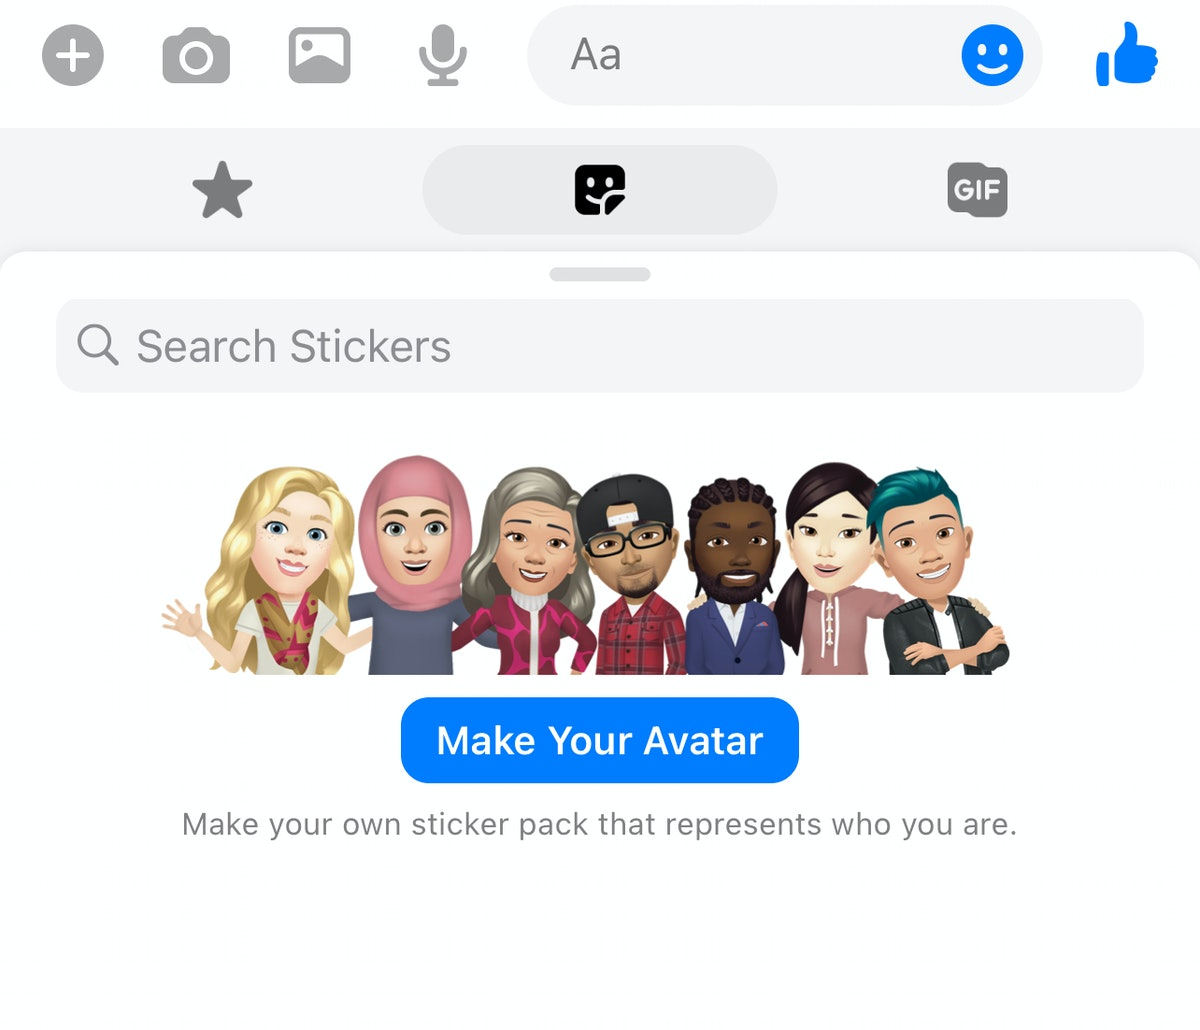 You can create a Facebook Avatar in Messenger by following a few easy steps.